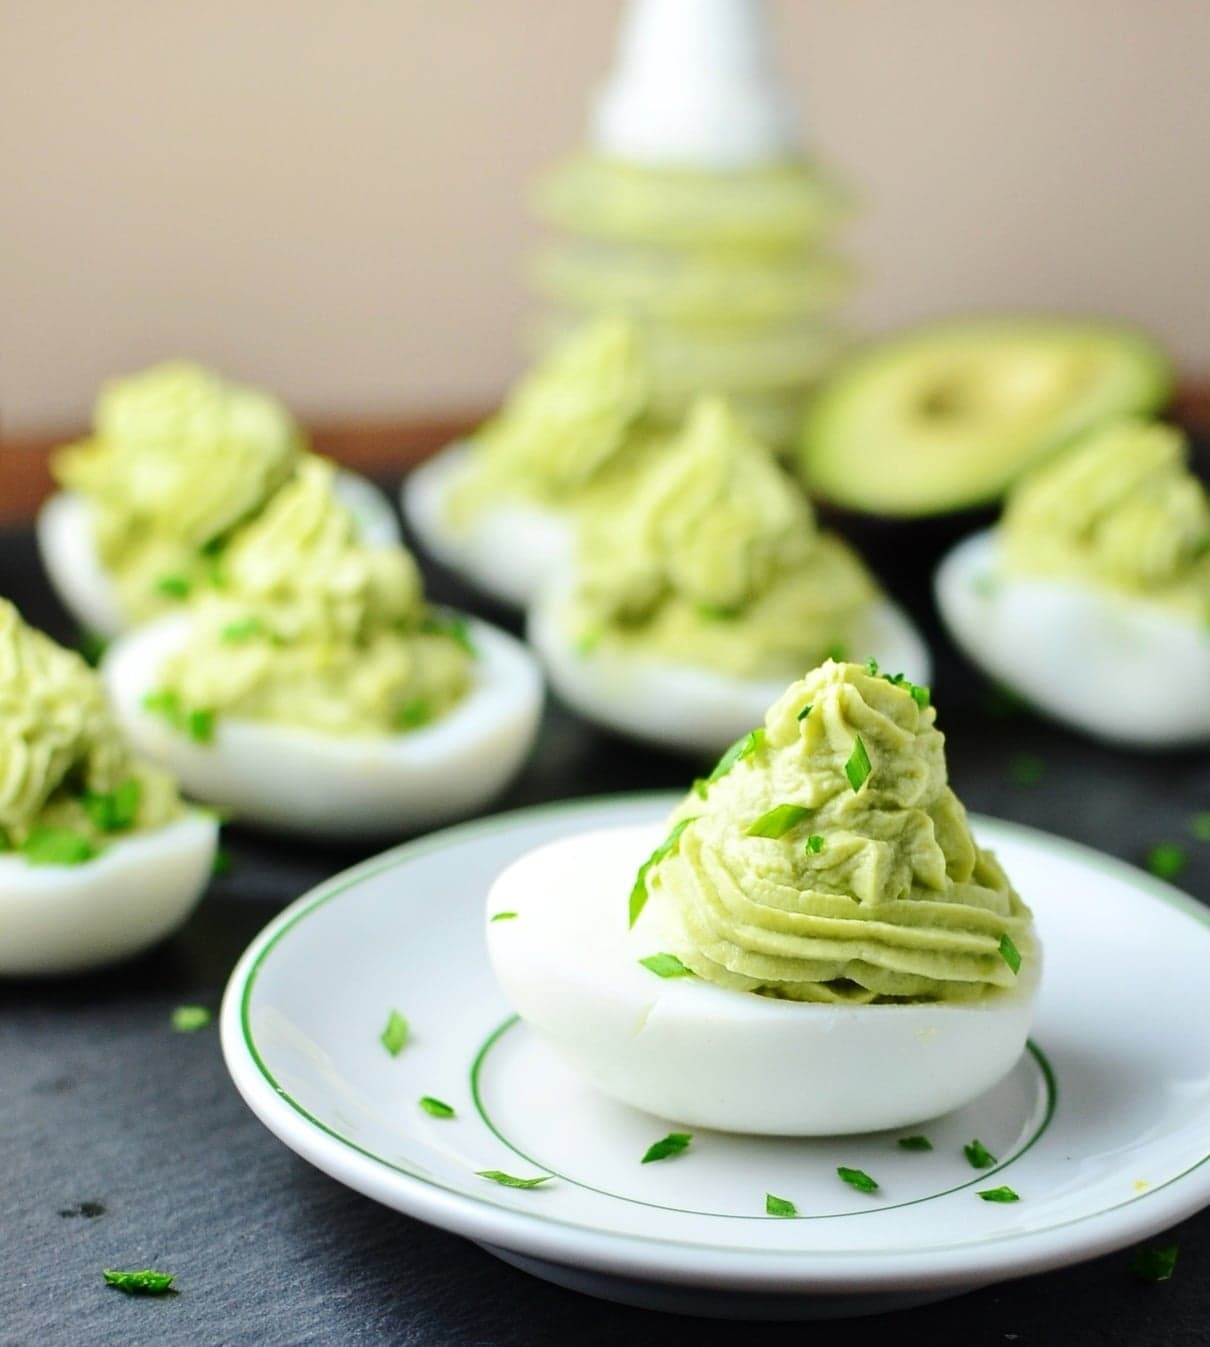 Recipes Using Eggs As Main Ingredient: 4-Ingredient Deviled Eggs With Avocado & Horseradish